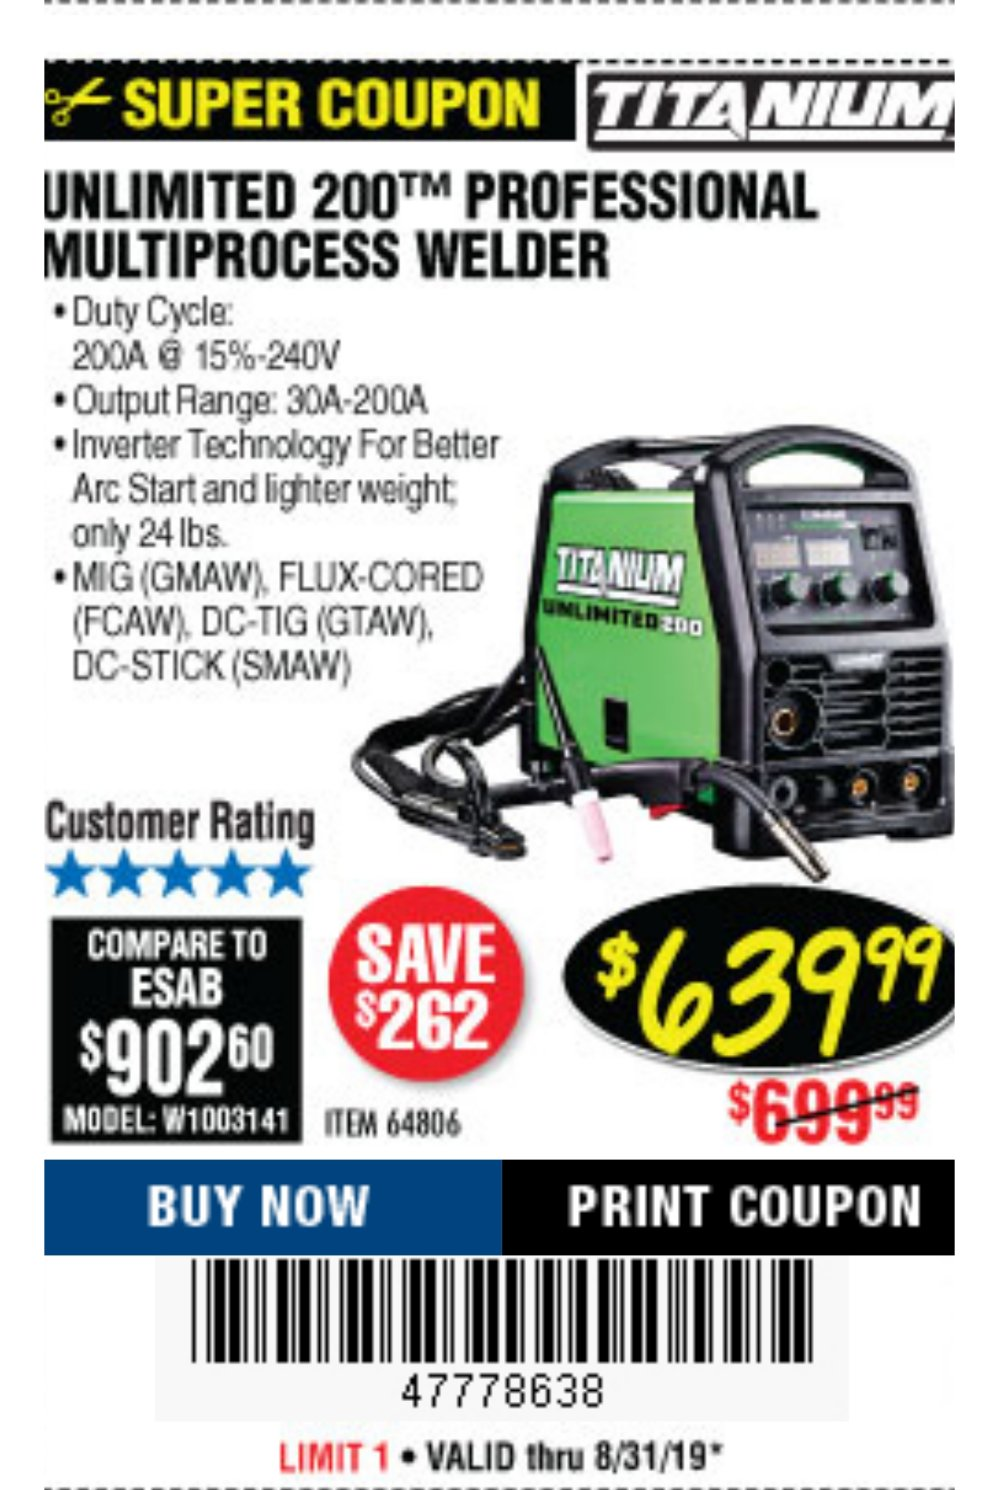 Harbor Freight Coupon, HF Coupons - Titanium Unlimited 200 Multiprocess Welder